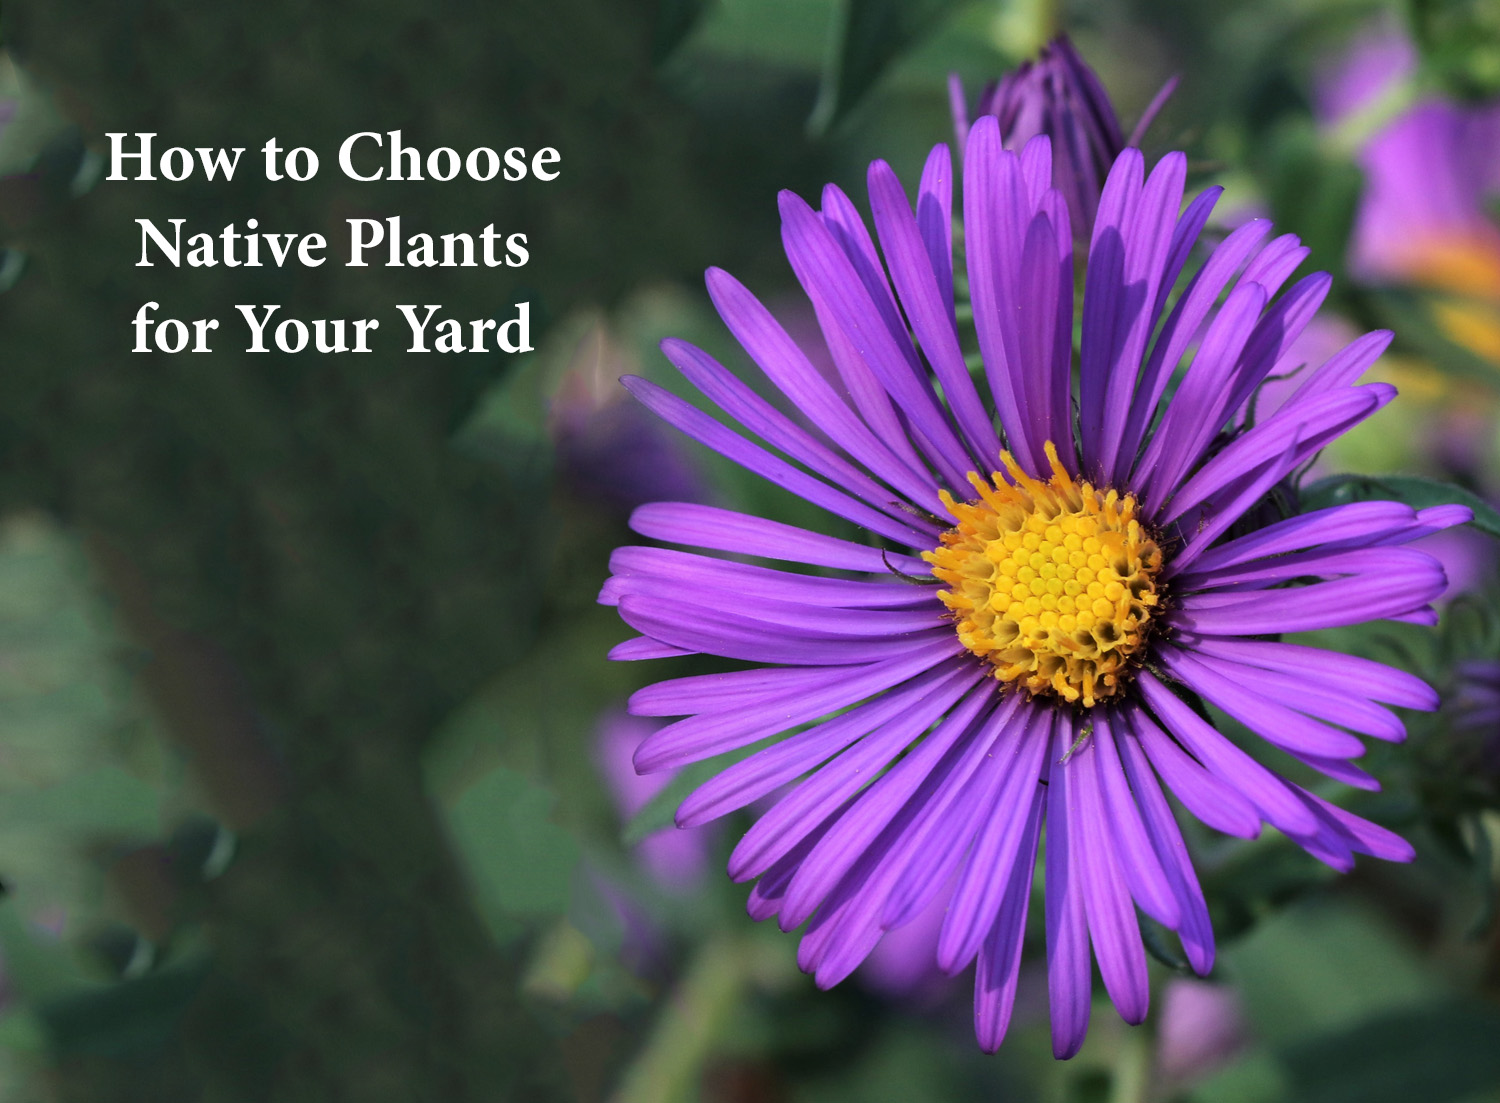 How to Choose Native Plants for Your Yard